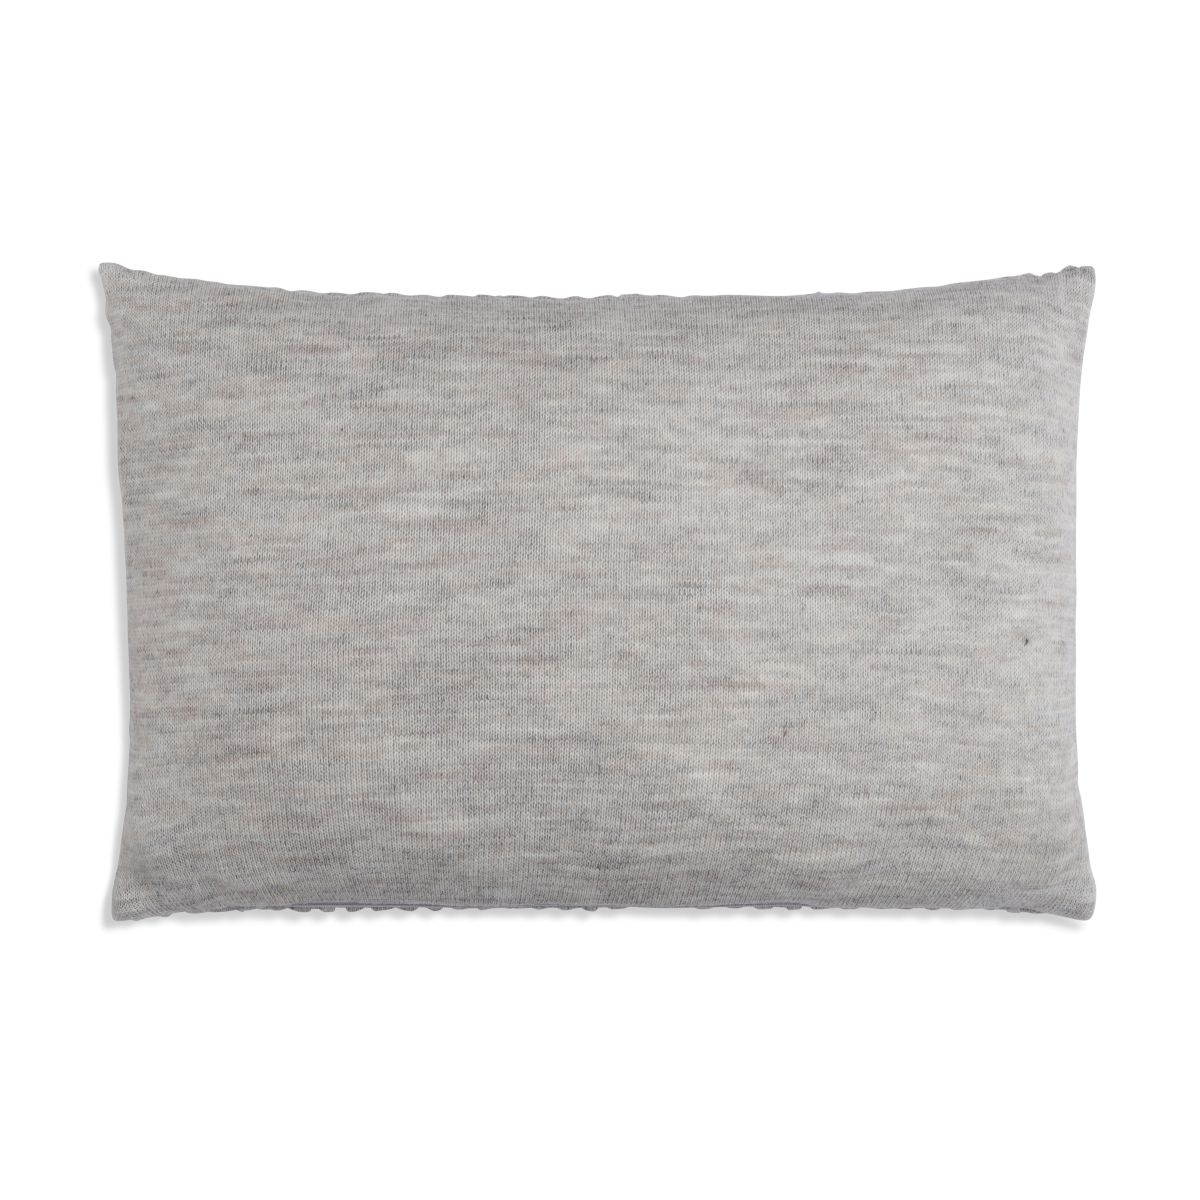 juul cushion light greybeige 60x40